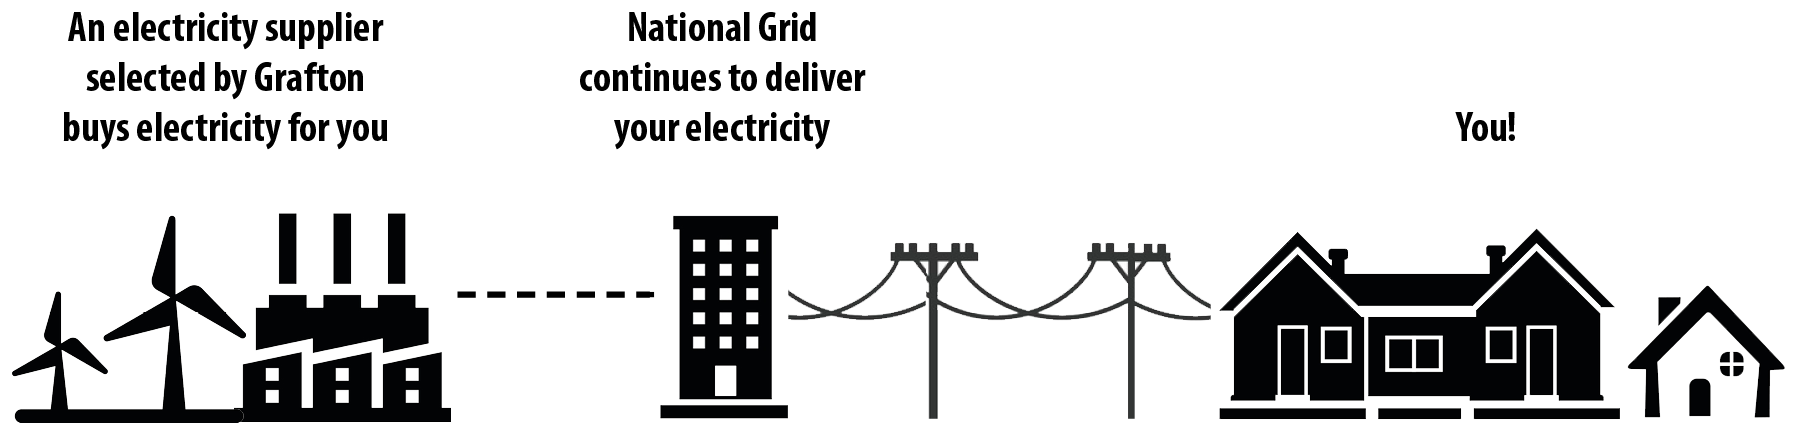 Diagram showing an electricity supplier, National Grid, and the town of Grafton